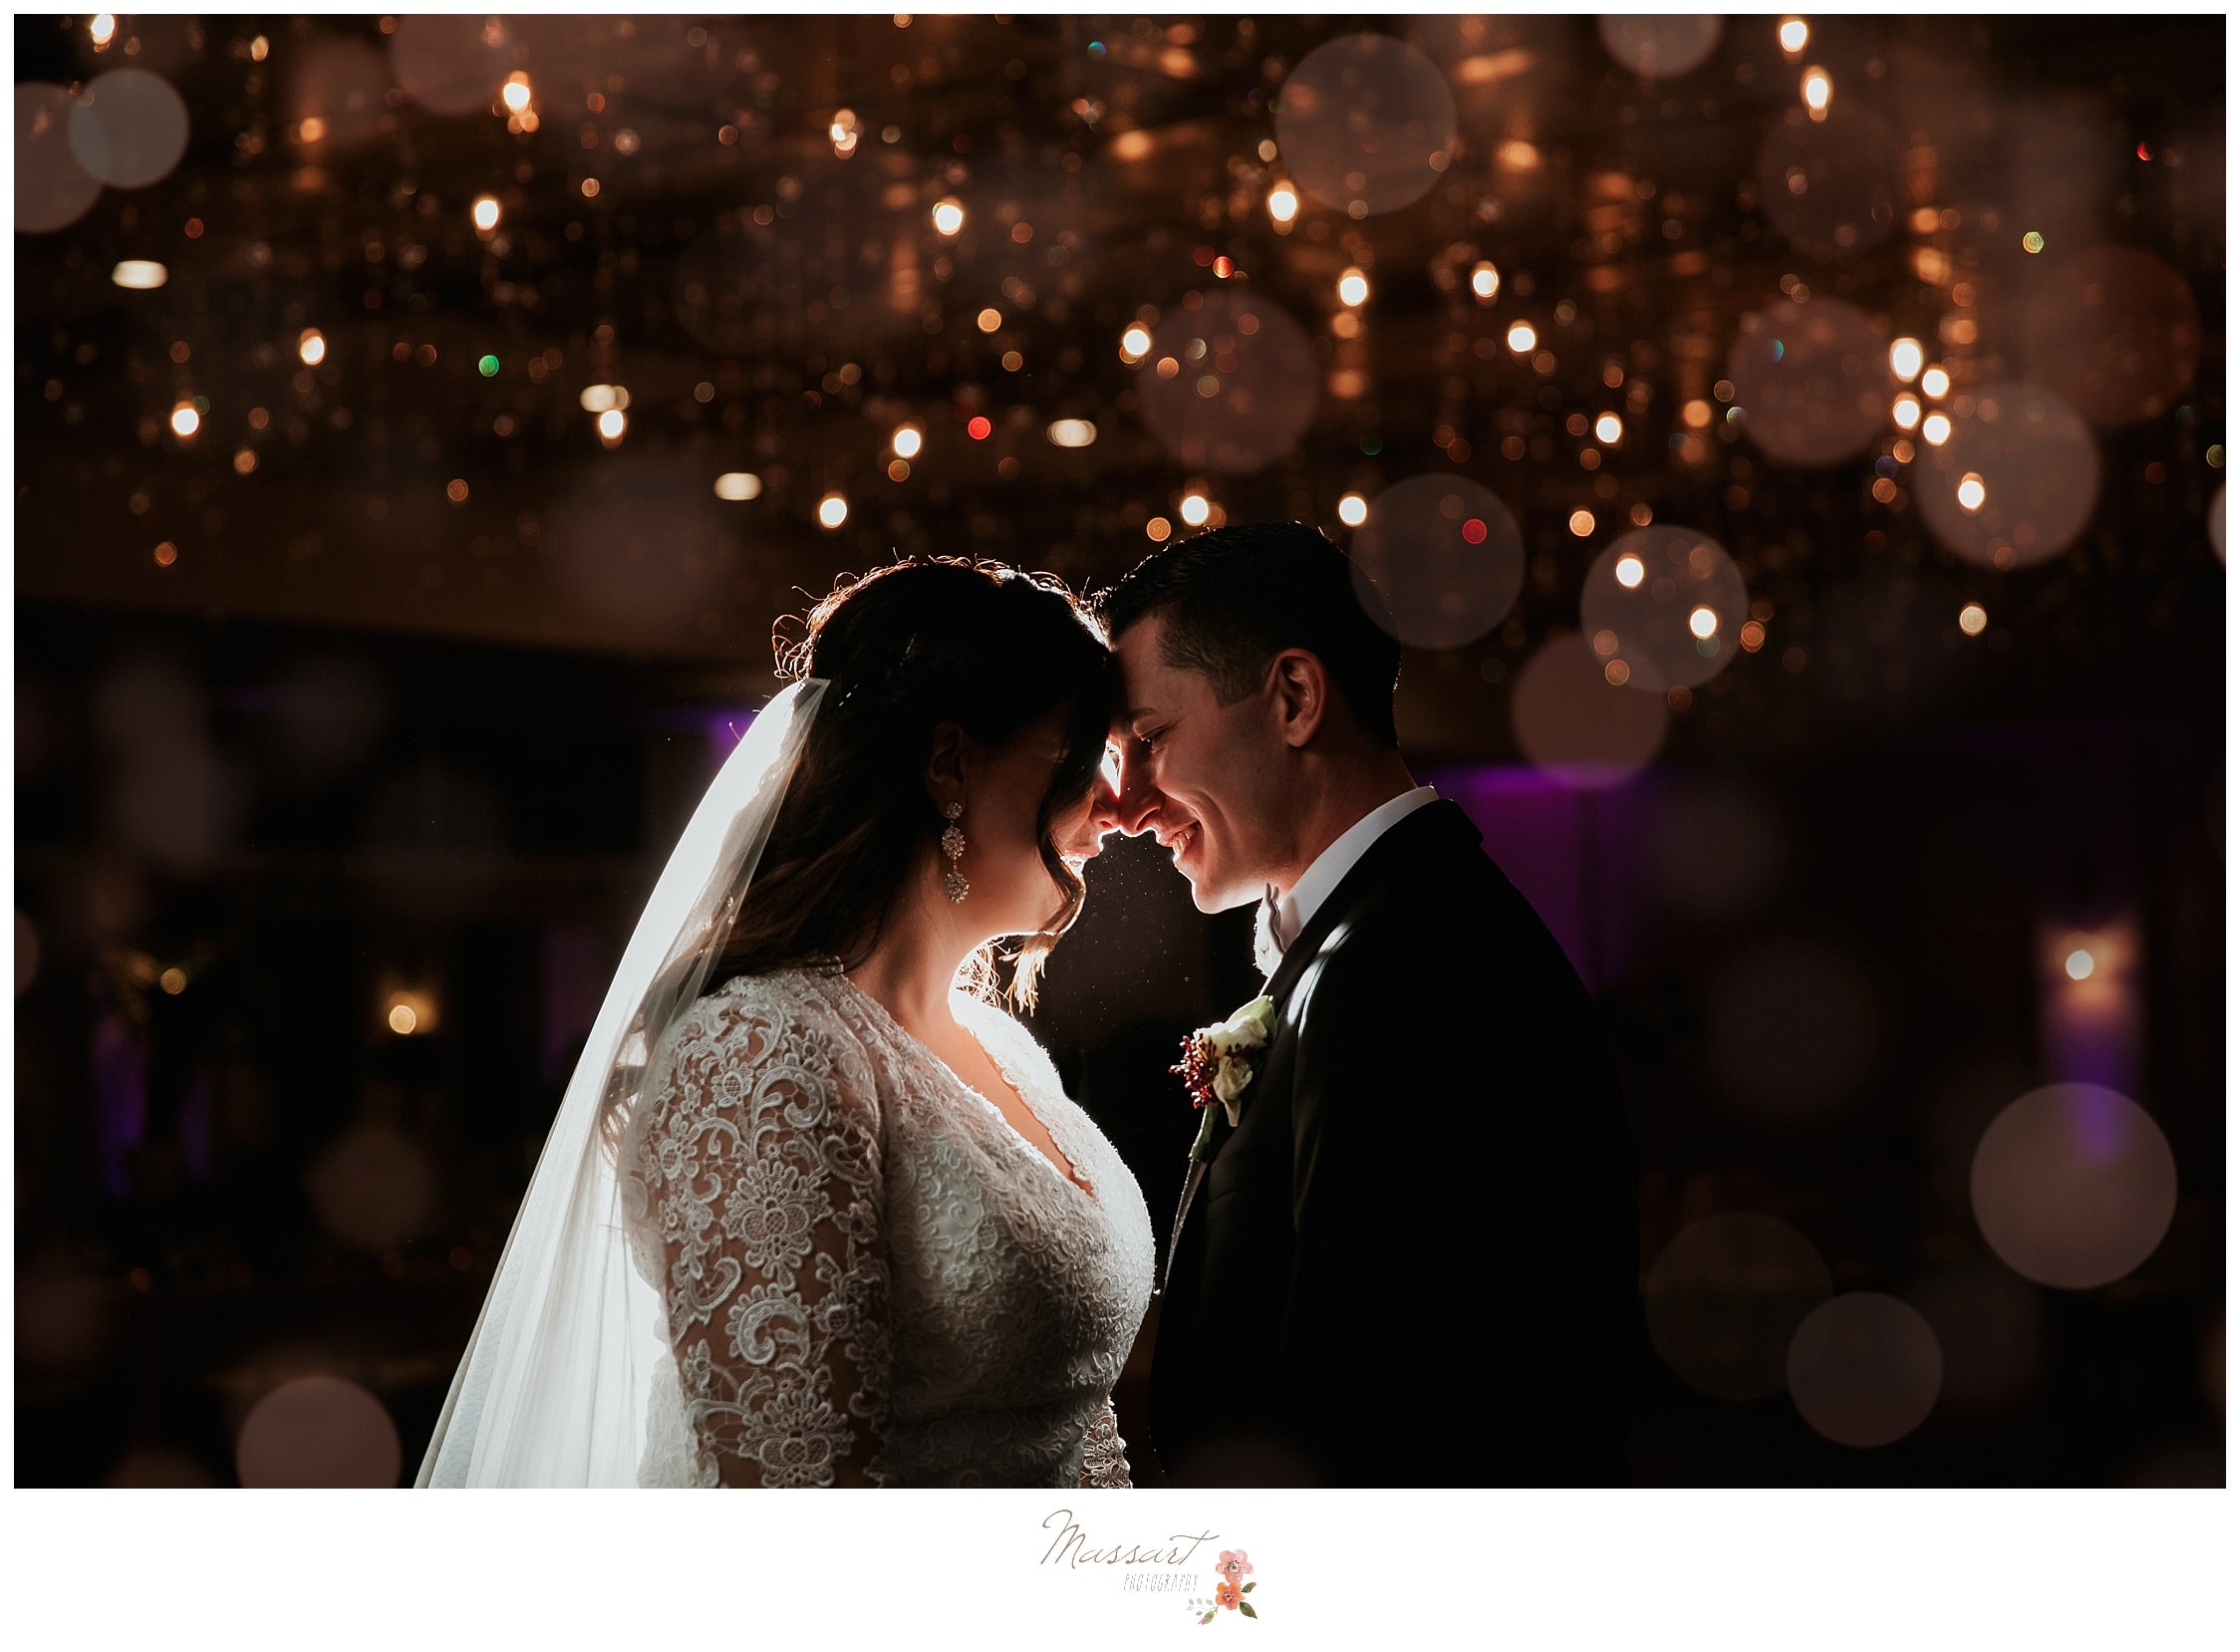 A dramatic wedding photo of the bride and groom under the twinkle stars at the atlantic resort ballroom in newport rhode island